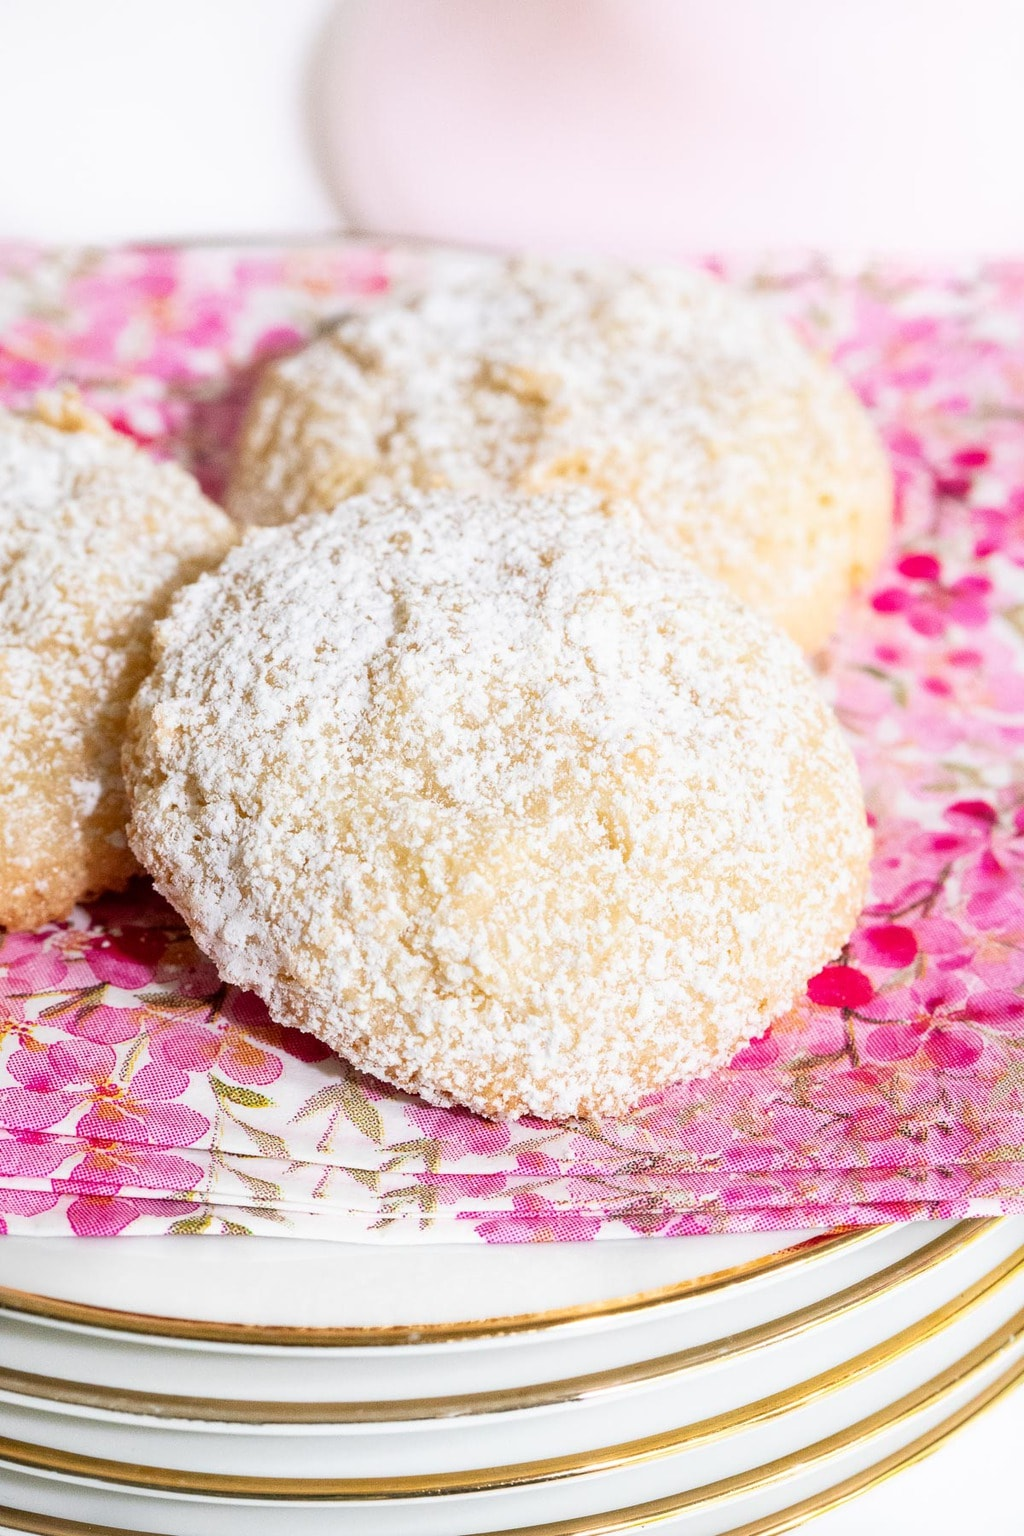 Vertical closeup photo of a plate of Ridiculously Easy French Almond Cookies on a pink, white and gold napkin.